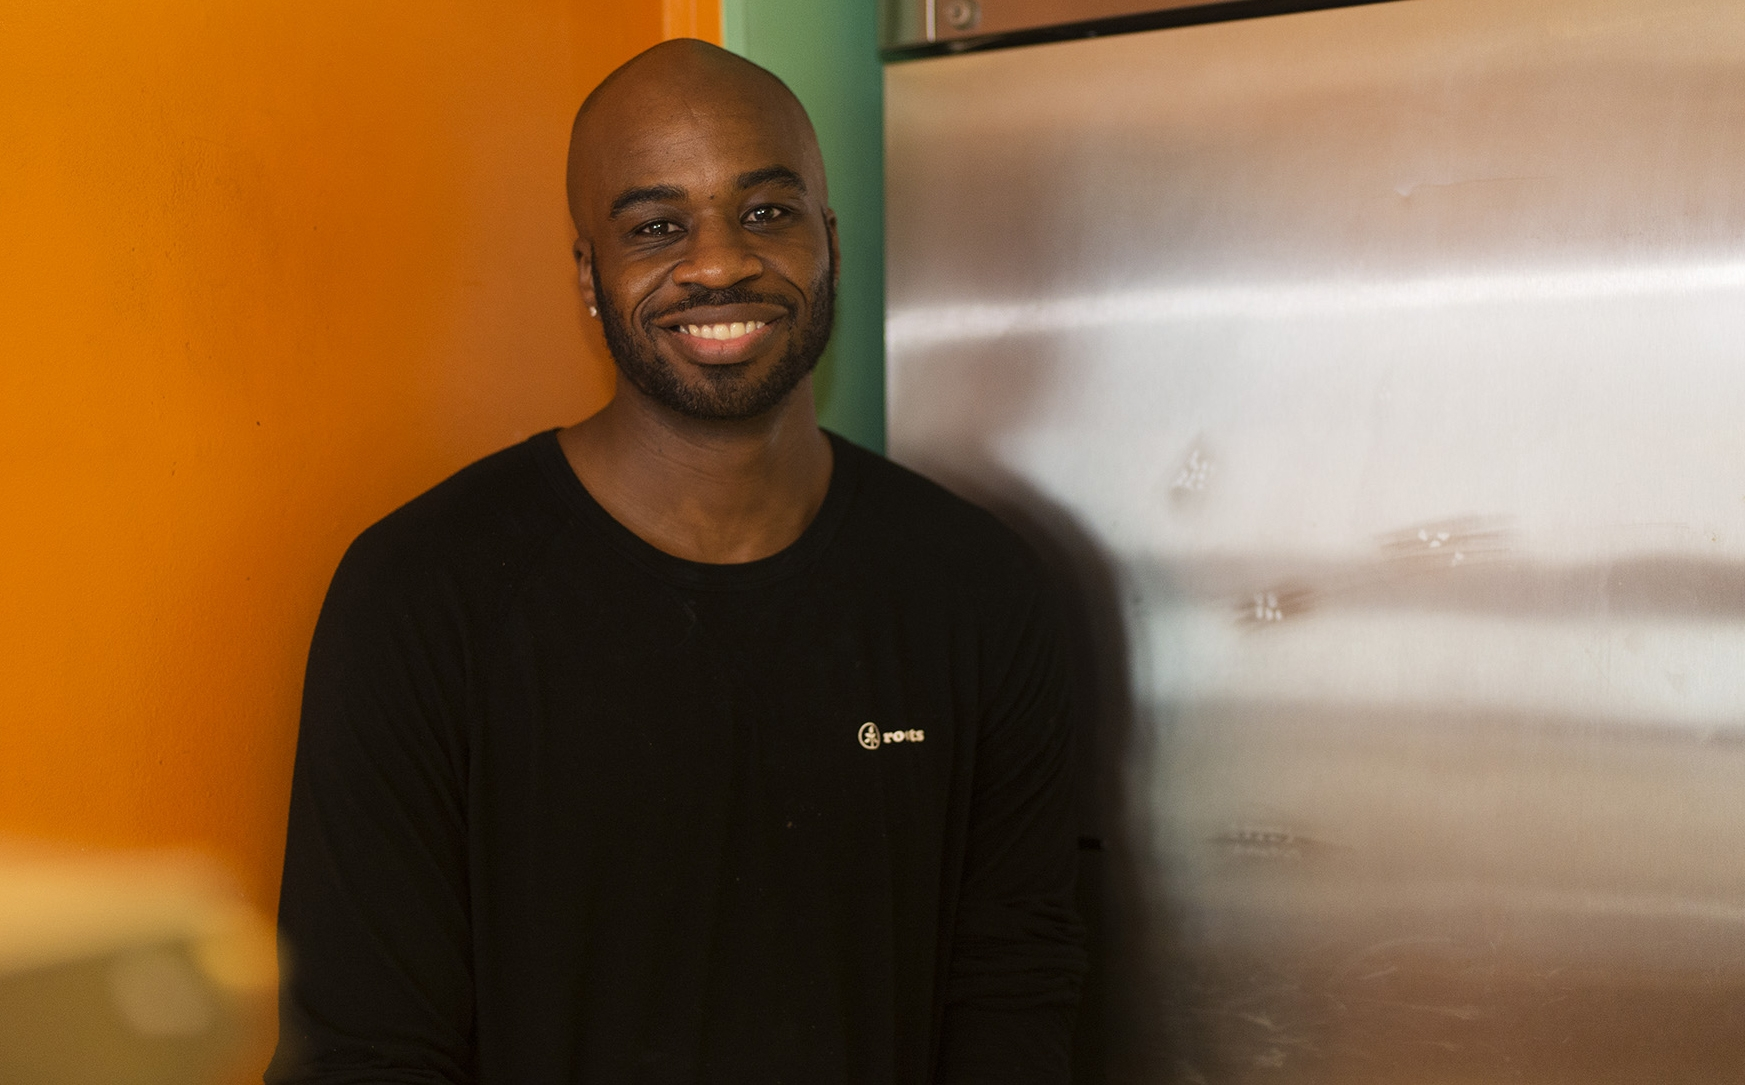 Junior Dann will be serving up London's best Caribbean food until Feb. 28.